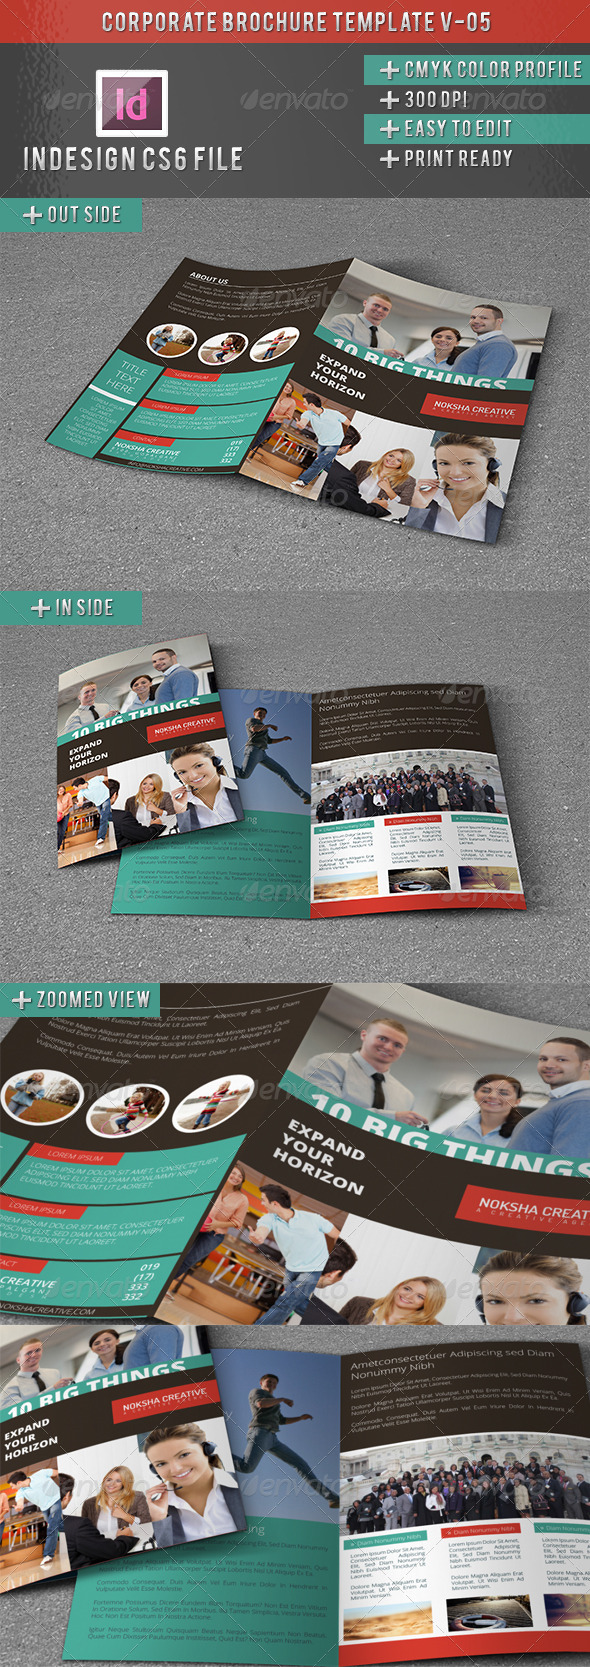 Corporate BiFold Brochure V-05 - Corporate Brochures